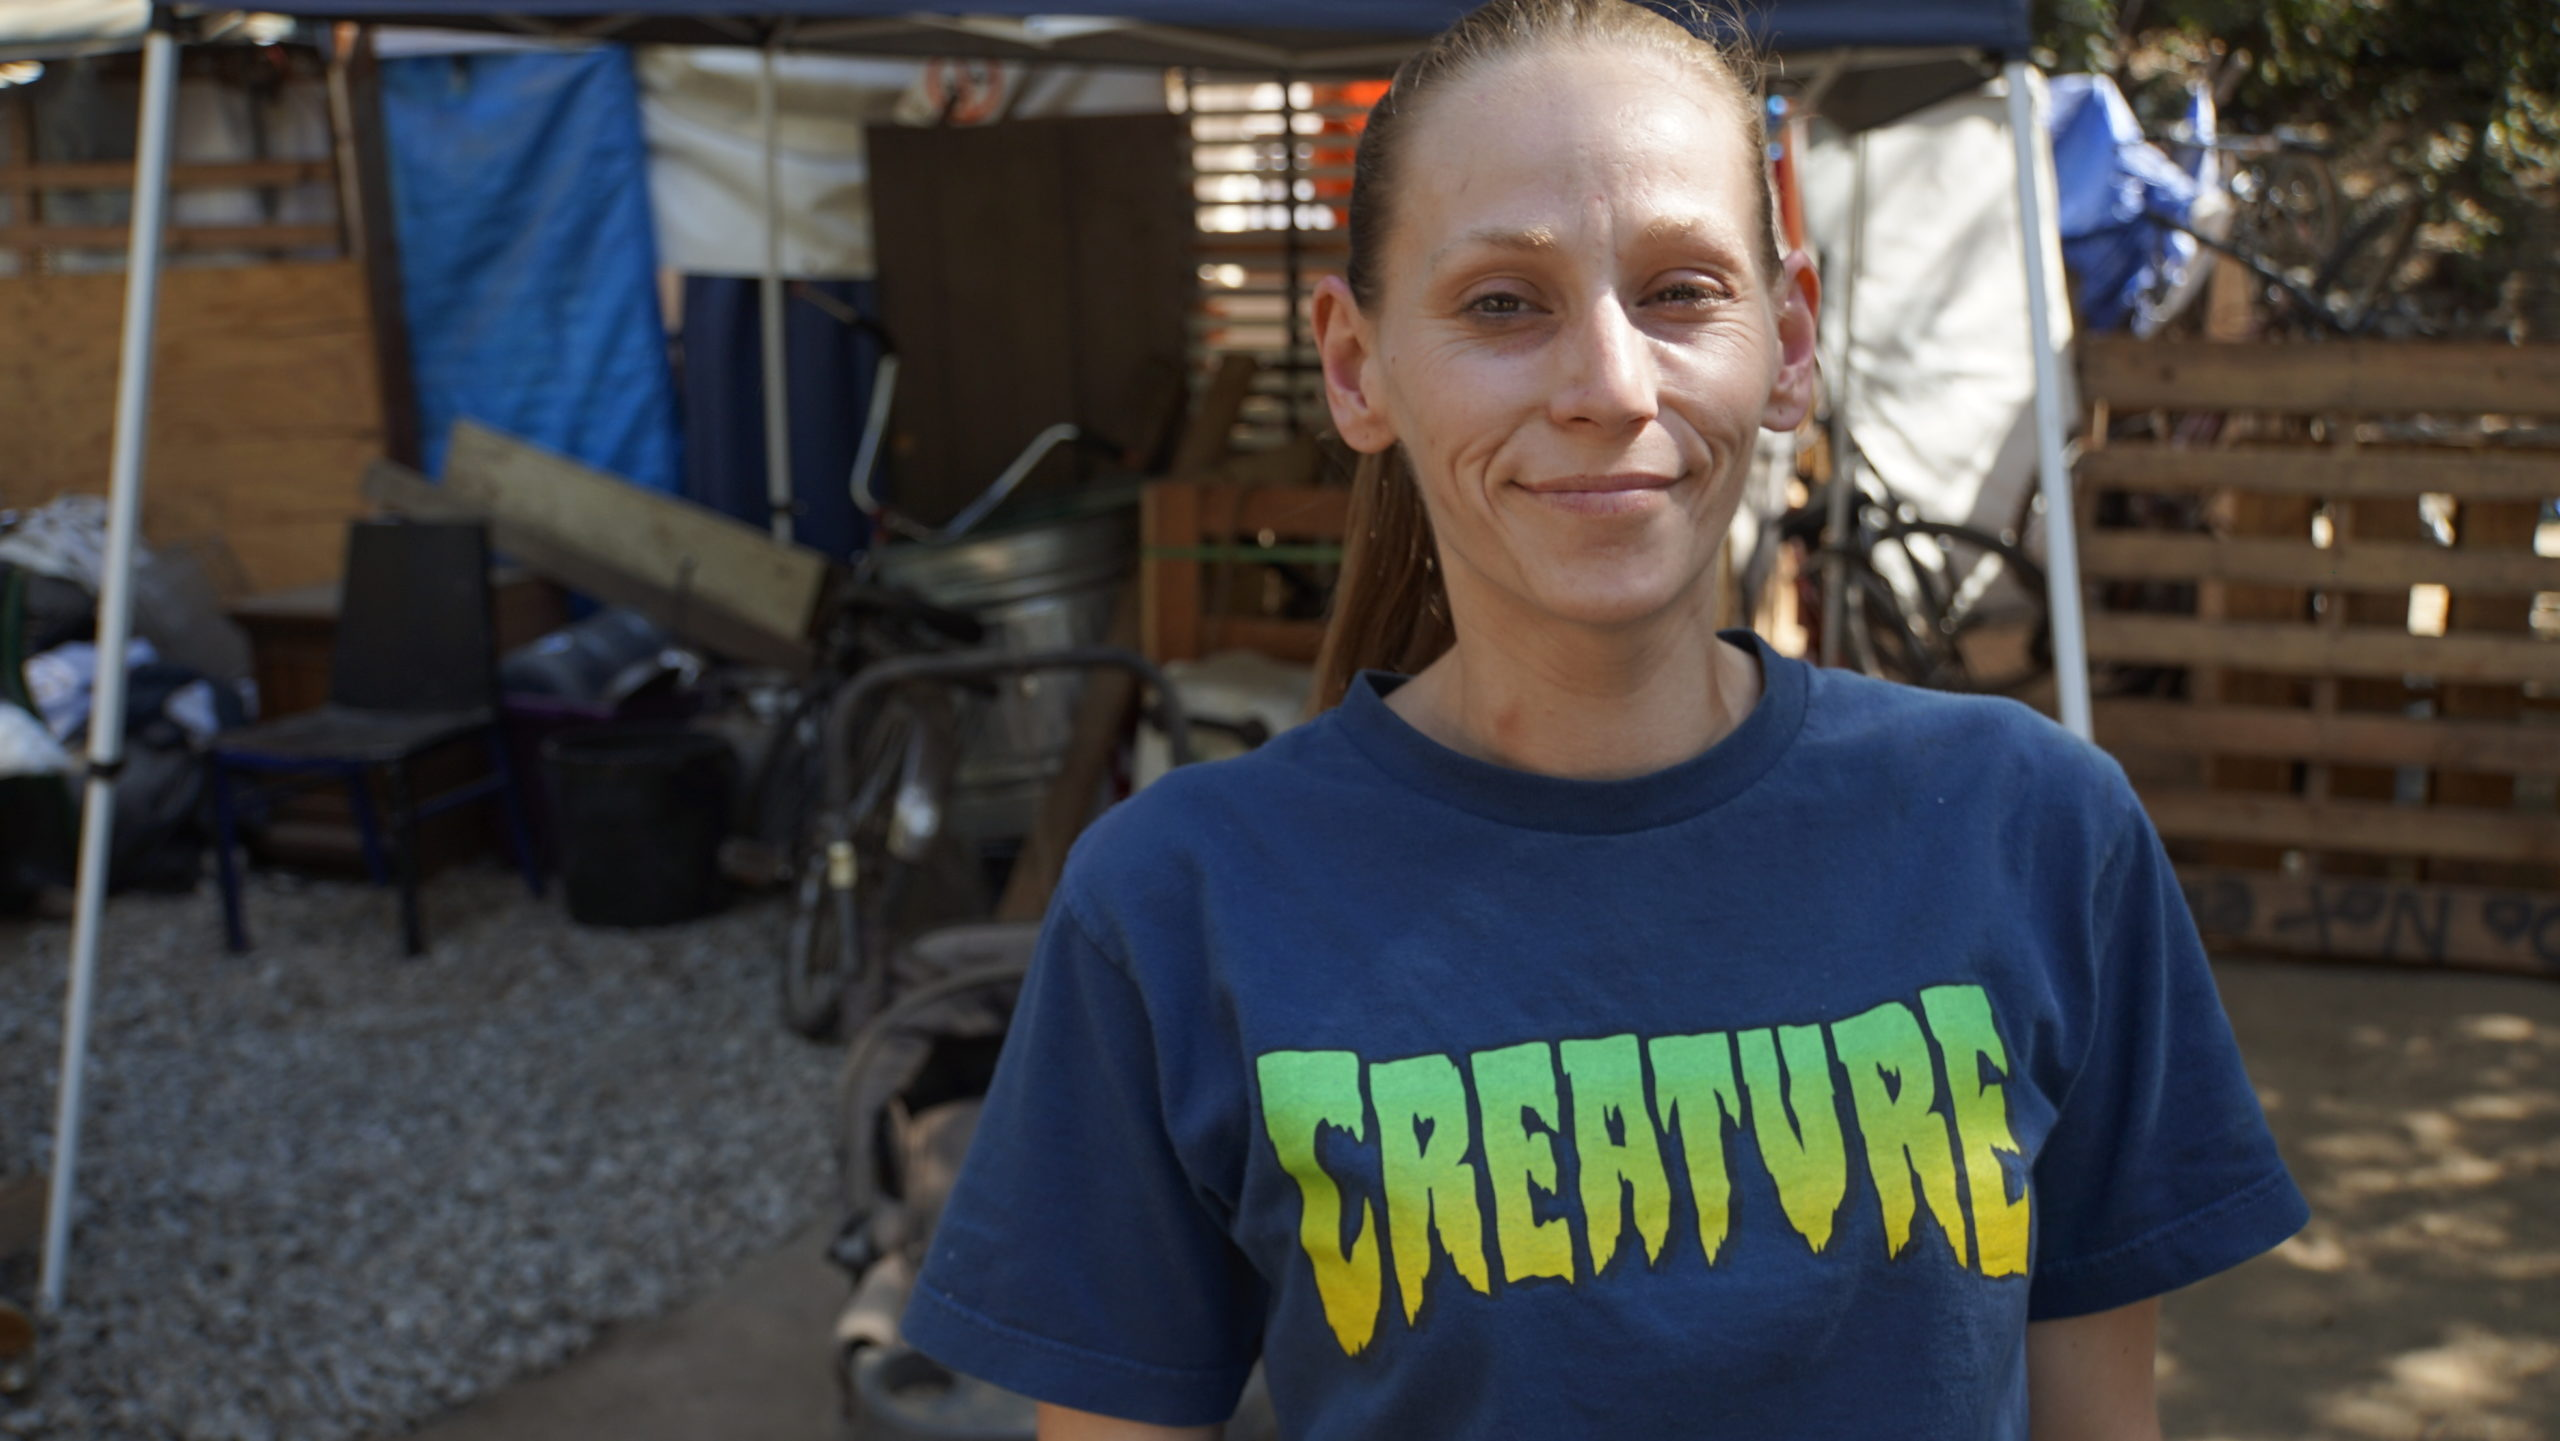 Brittany Shay, a resident of Camp Paradise in Santa Cruz